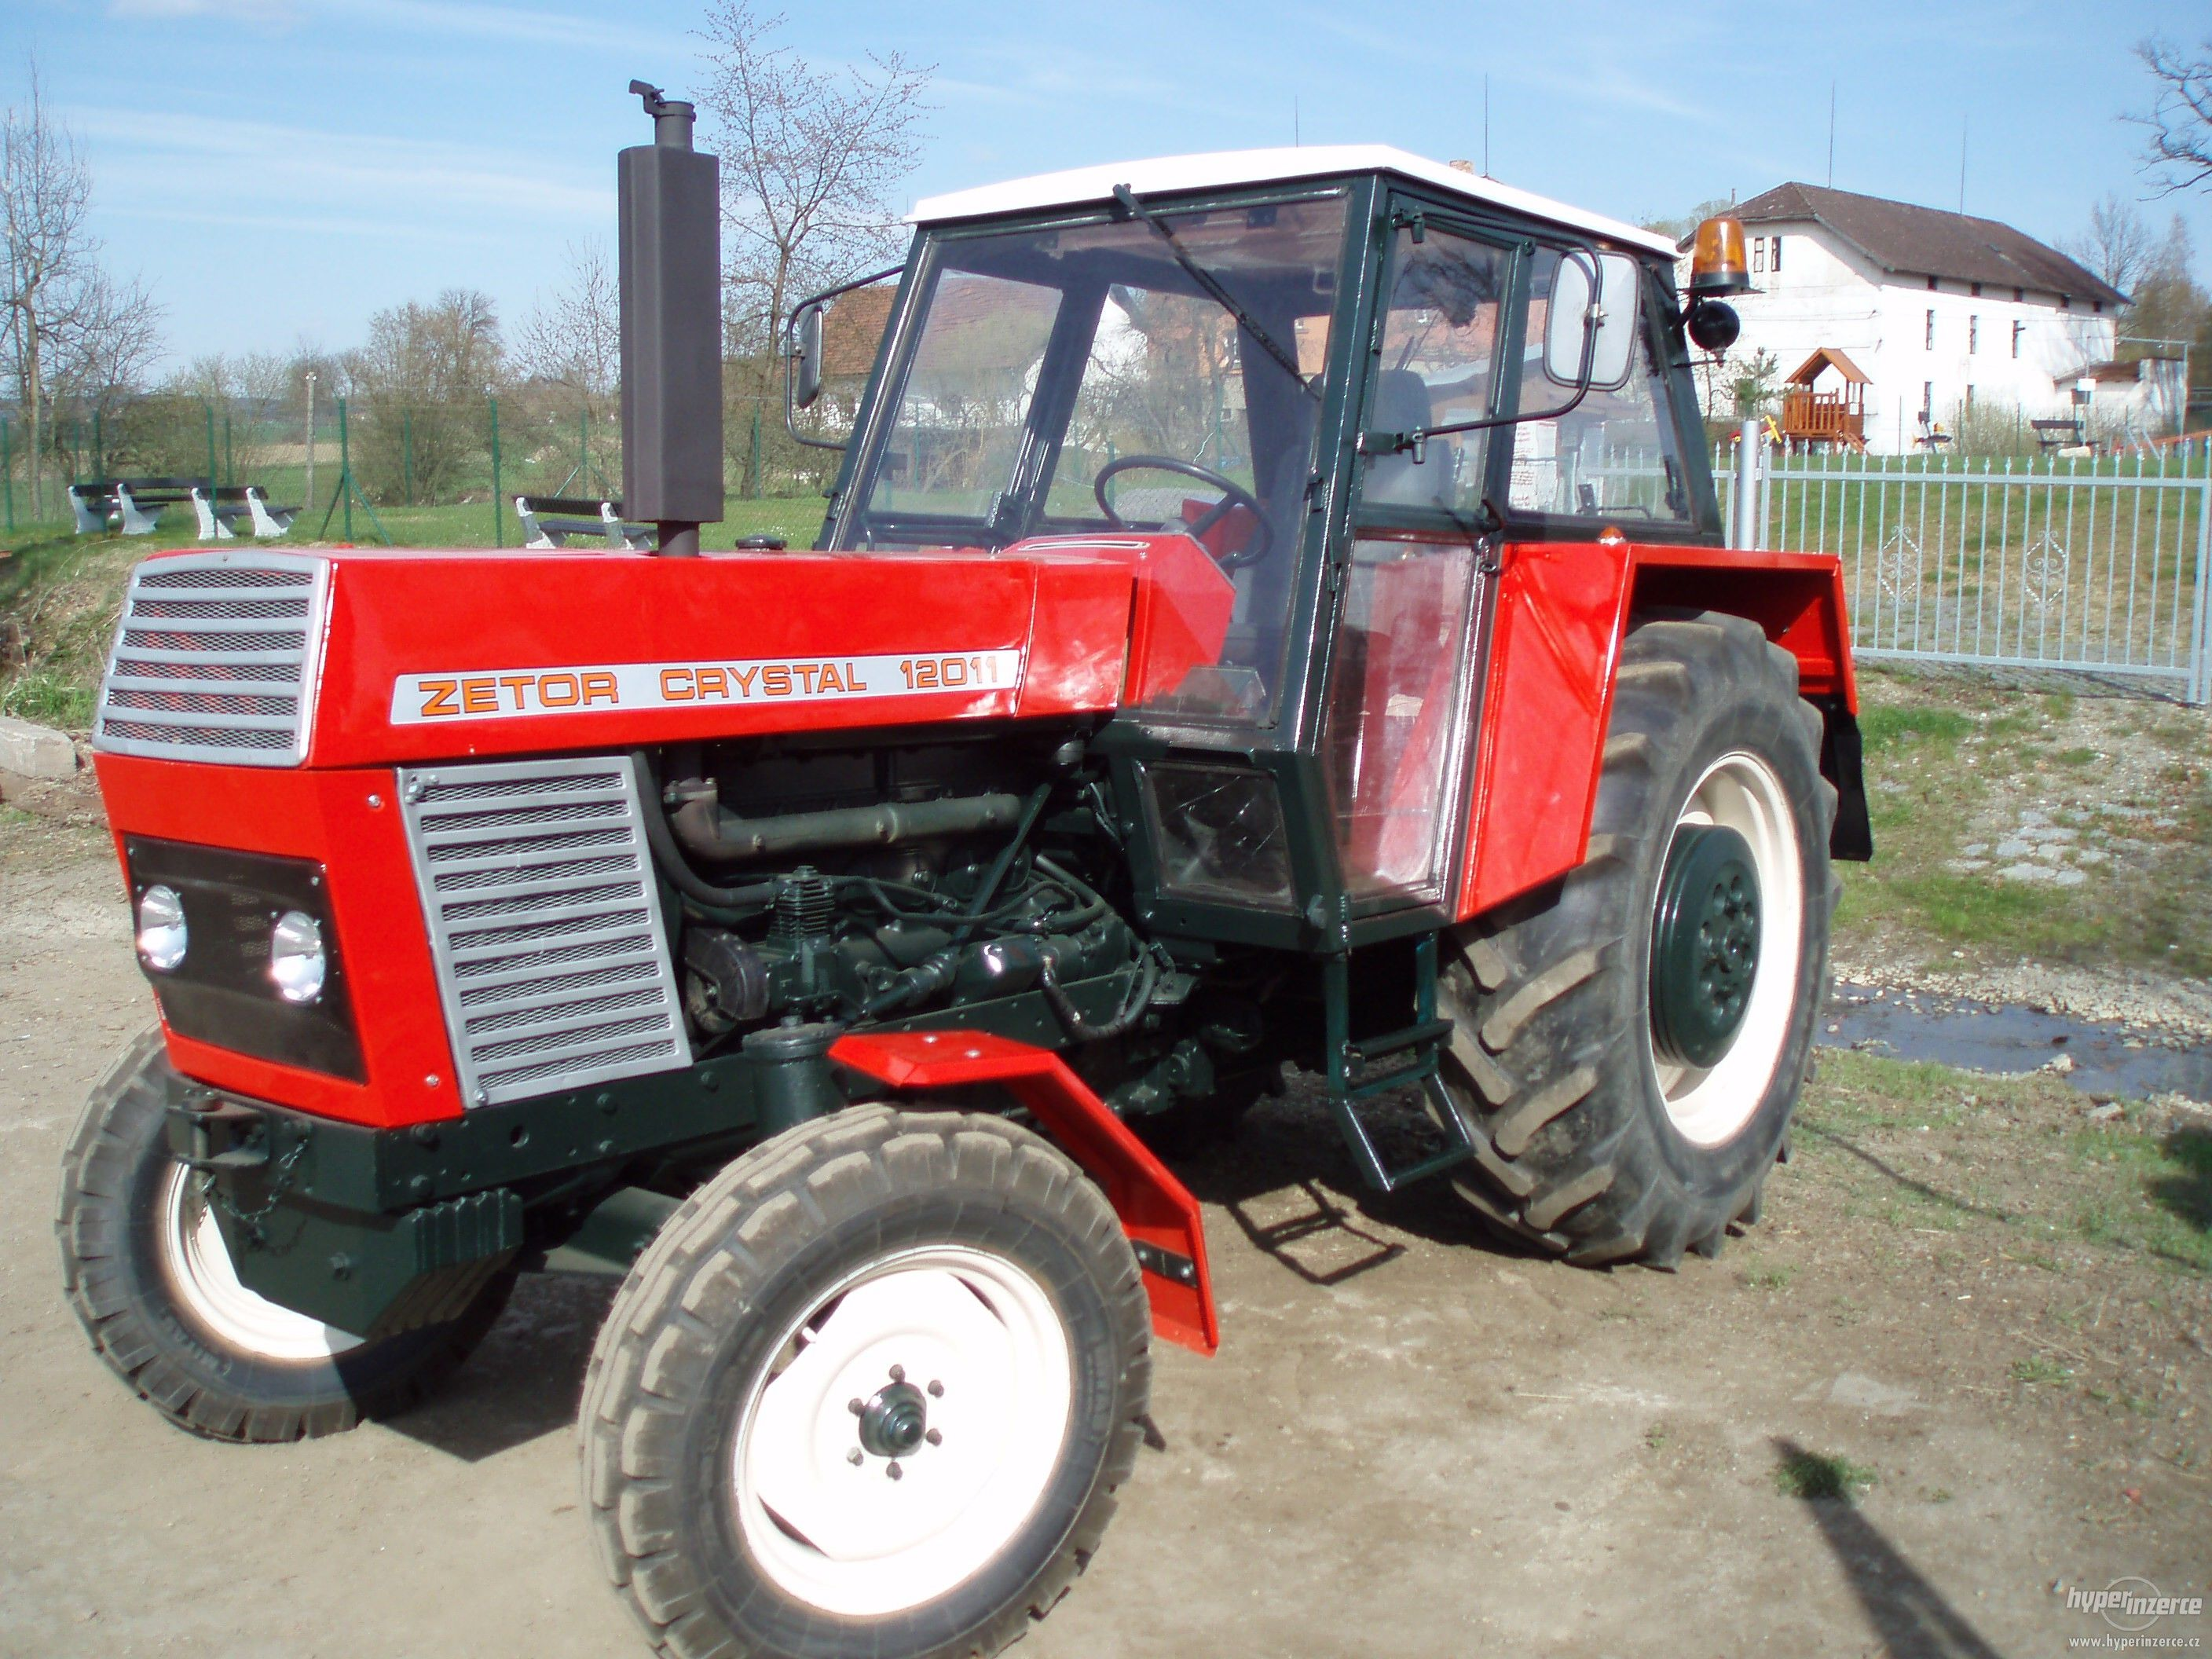 Zetor Crystal 12011 Agriculture, Farming, Tractor, Tractors, Horticulture